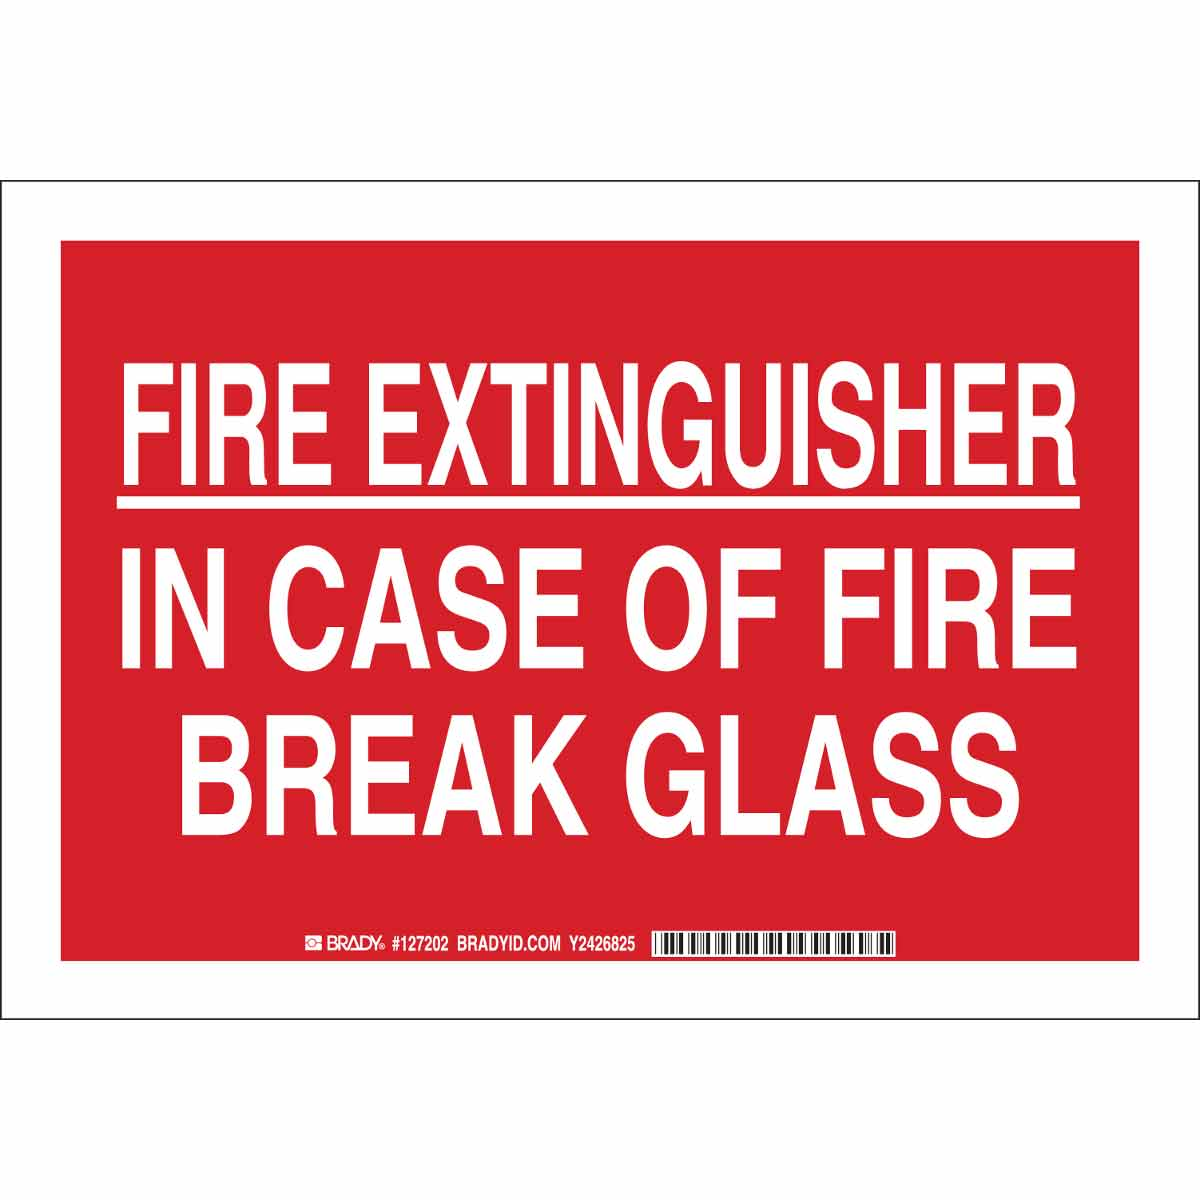 Brady Part 127201 Fire Extinguisher In Case Of Fire Break Glass